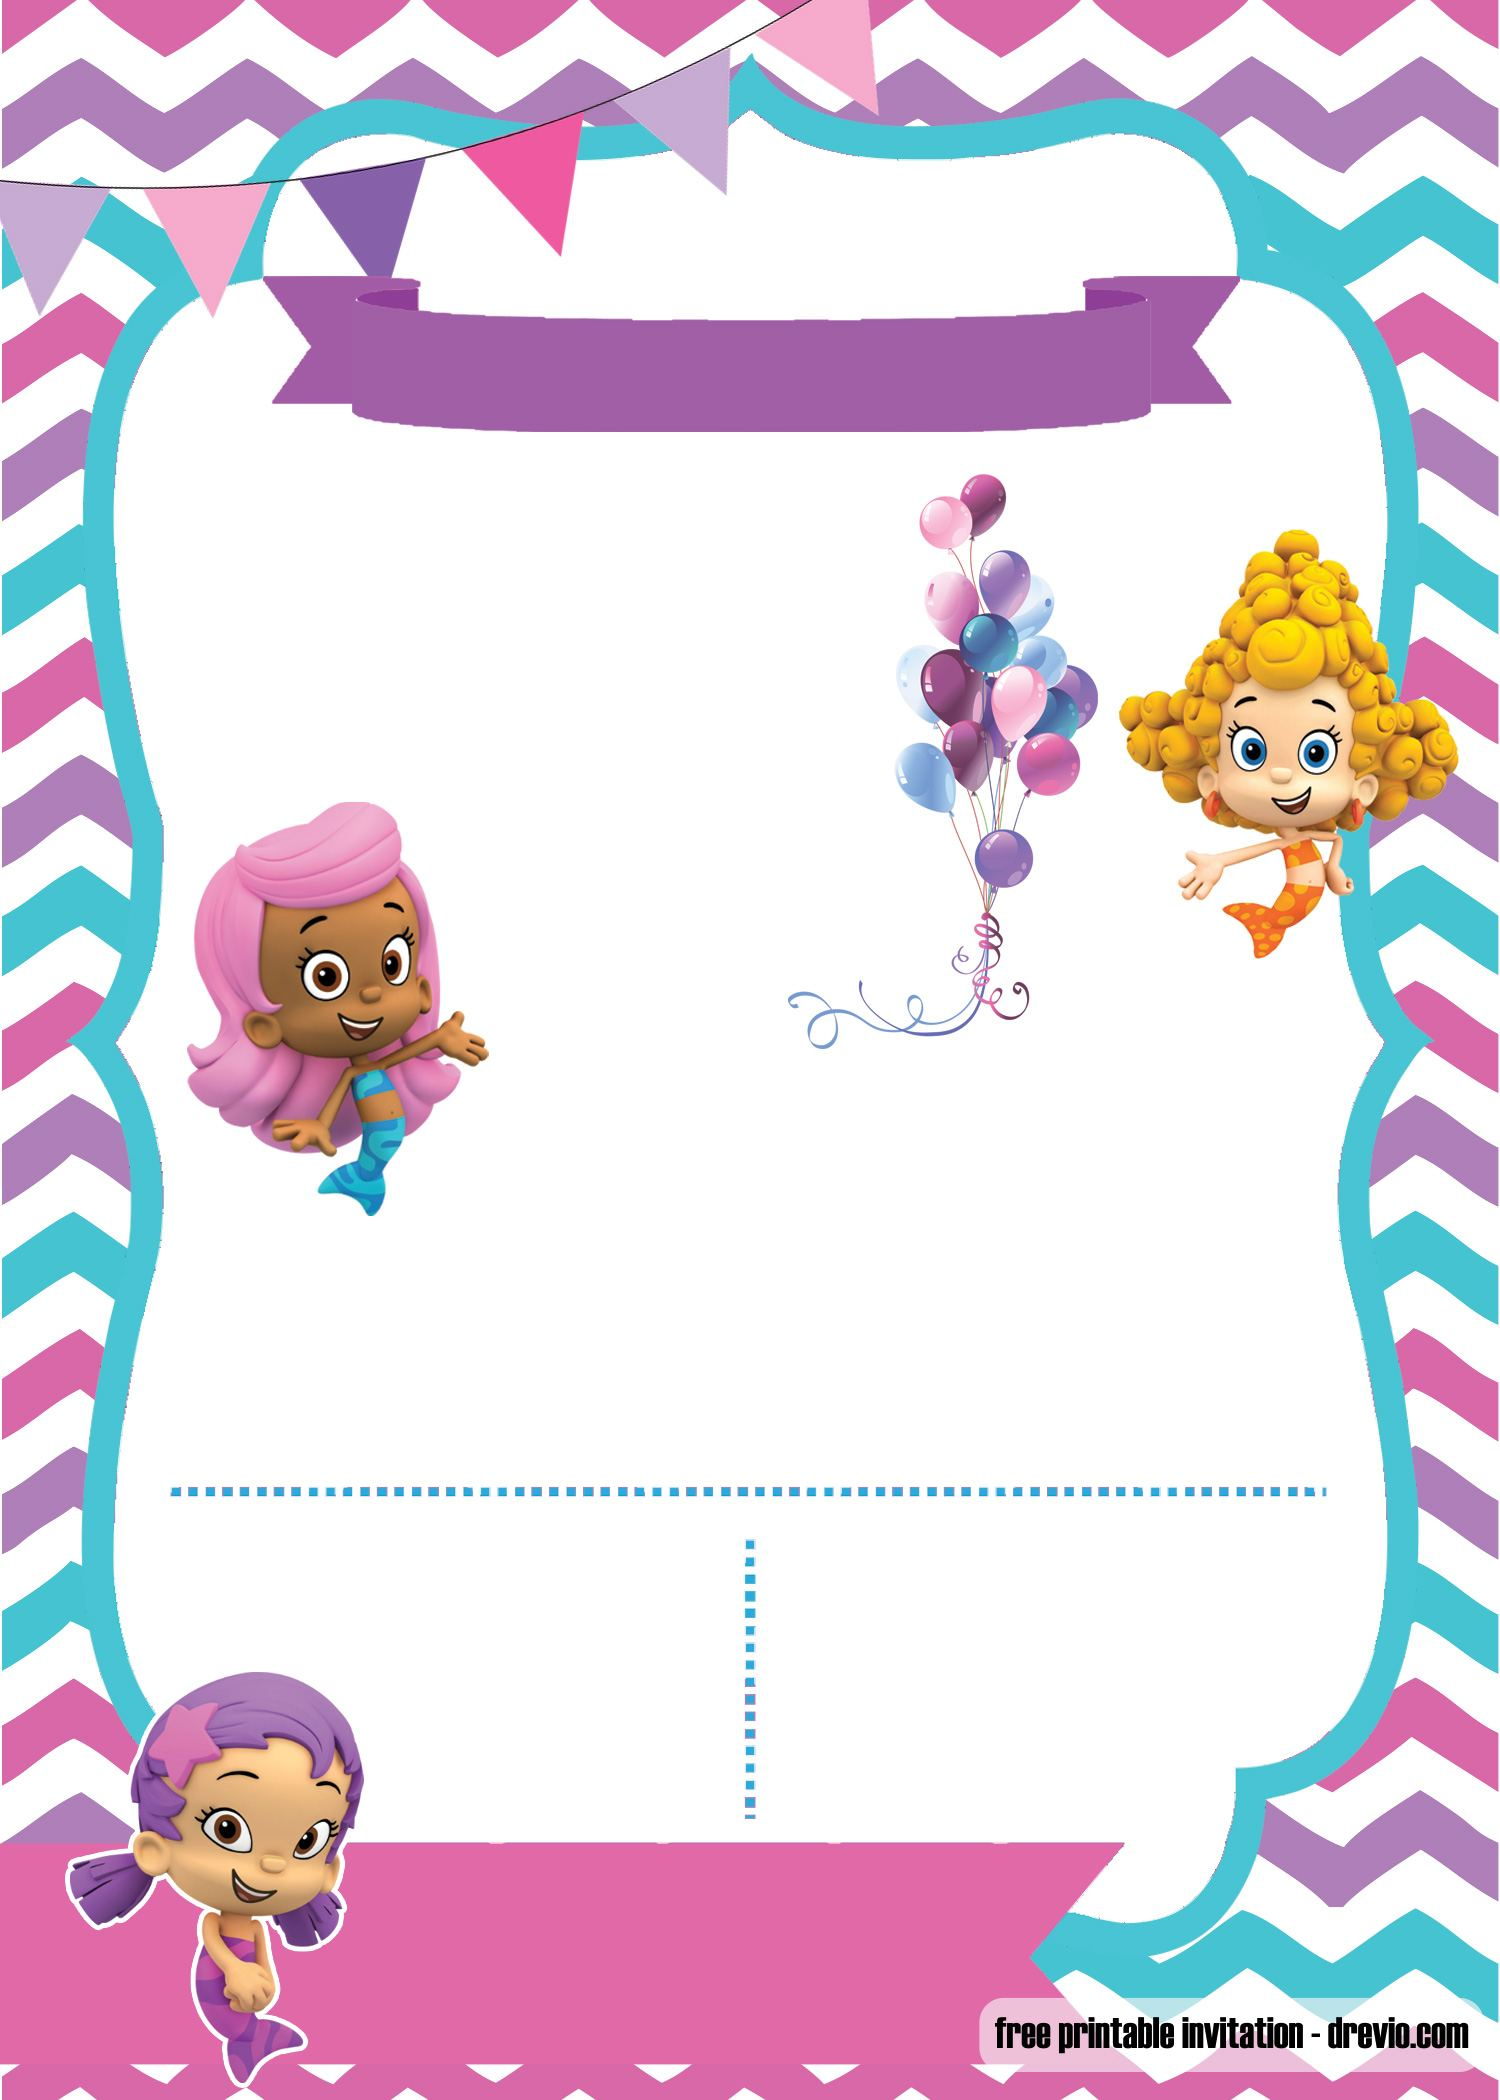 FREE Bubble Guppies invitation template - FREE PRINTABLE ...